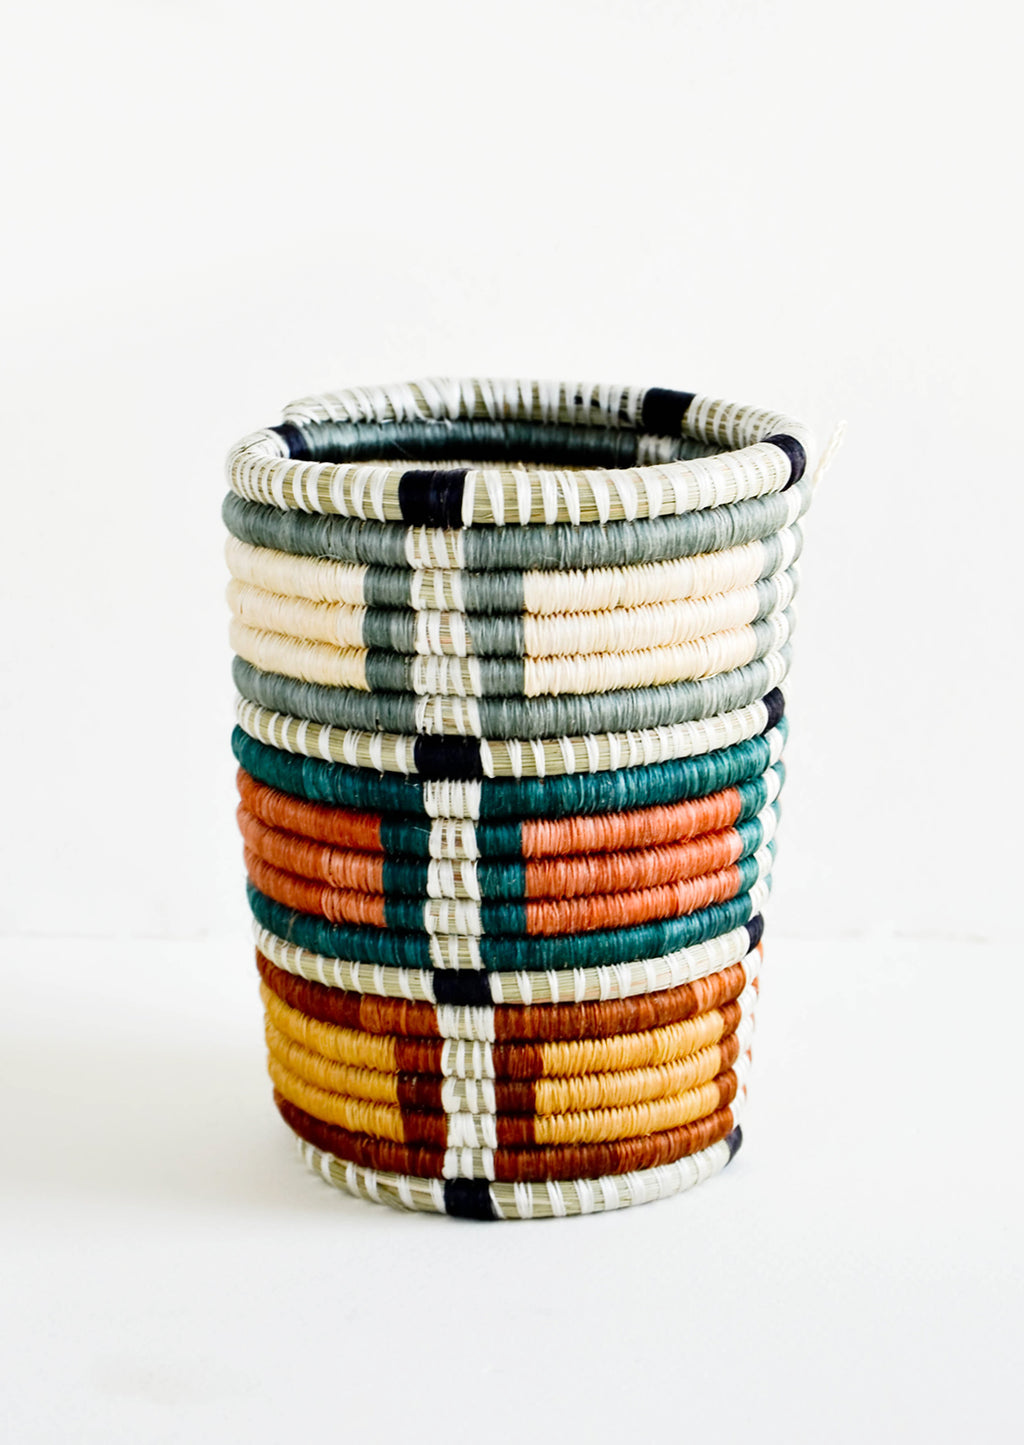 Grey Multi: Pencil cup shaped baskets woven from multicolor sweetgrass. Mix of muted colors in a square geometric pattern.